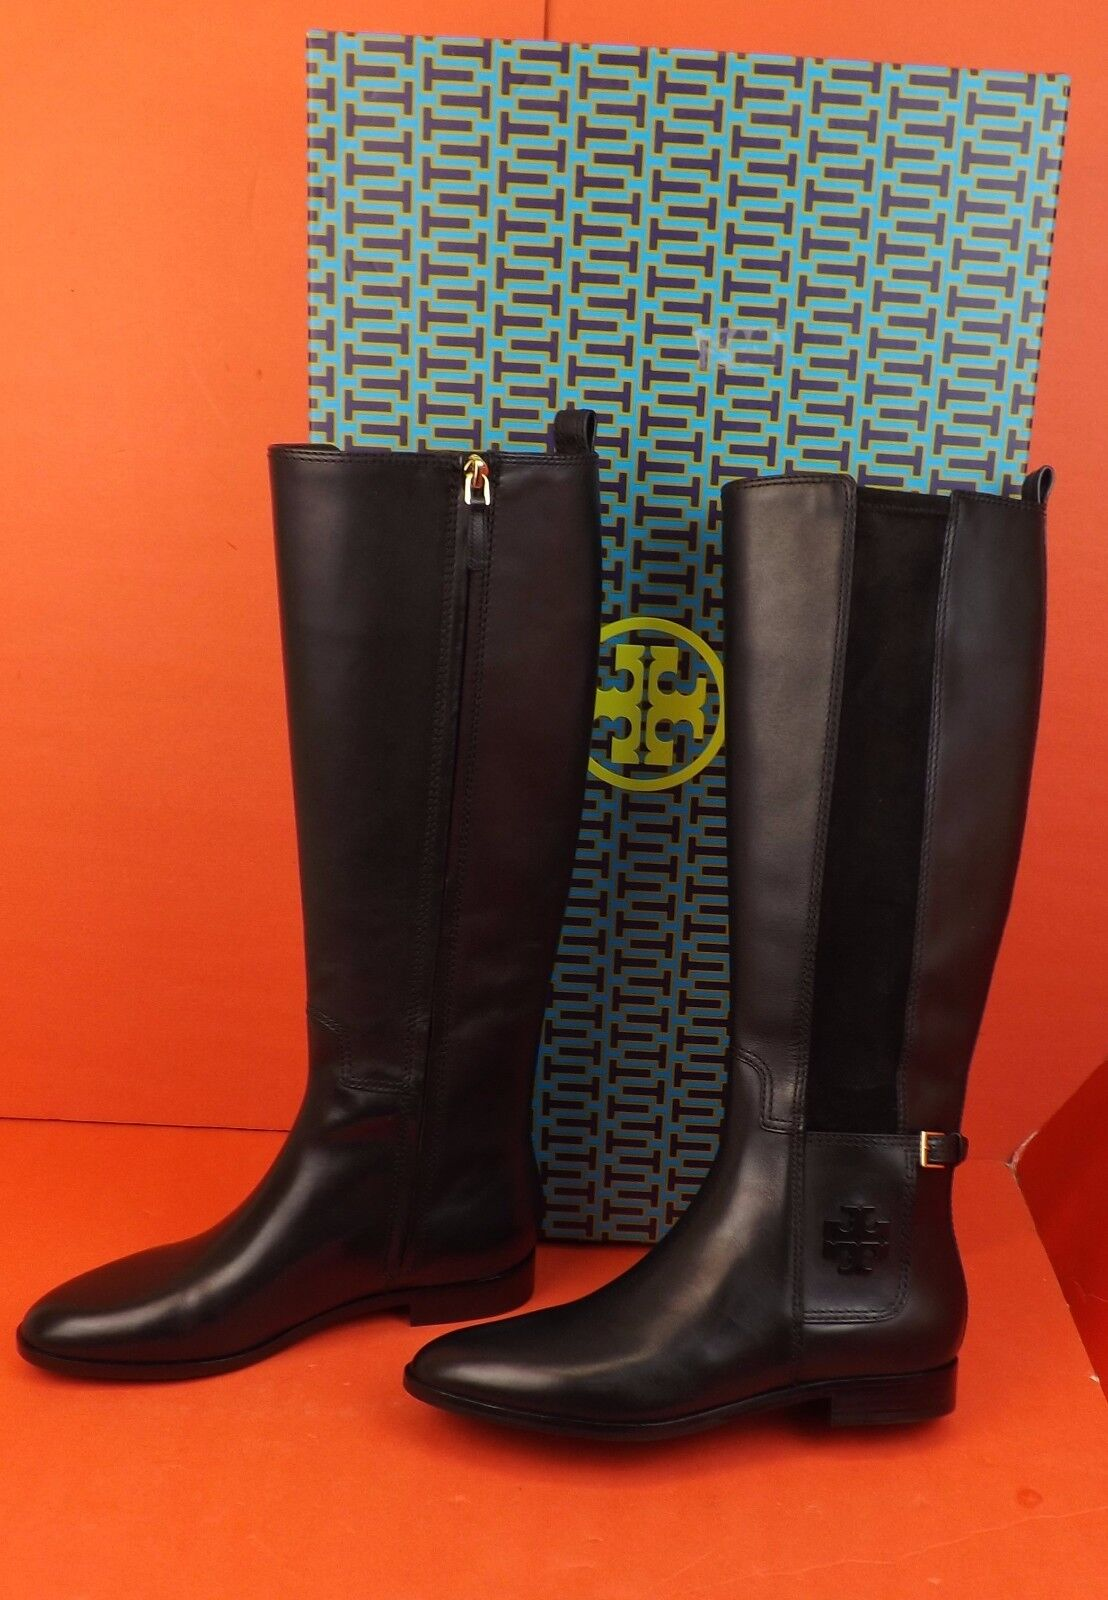 NIB TORY BURCH WYATT BLACK LEATHER BLACK REVA TALL ELASTIC RIDING ZIP BOOTS 7.5